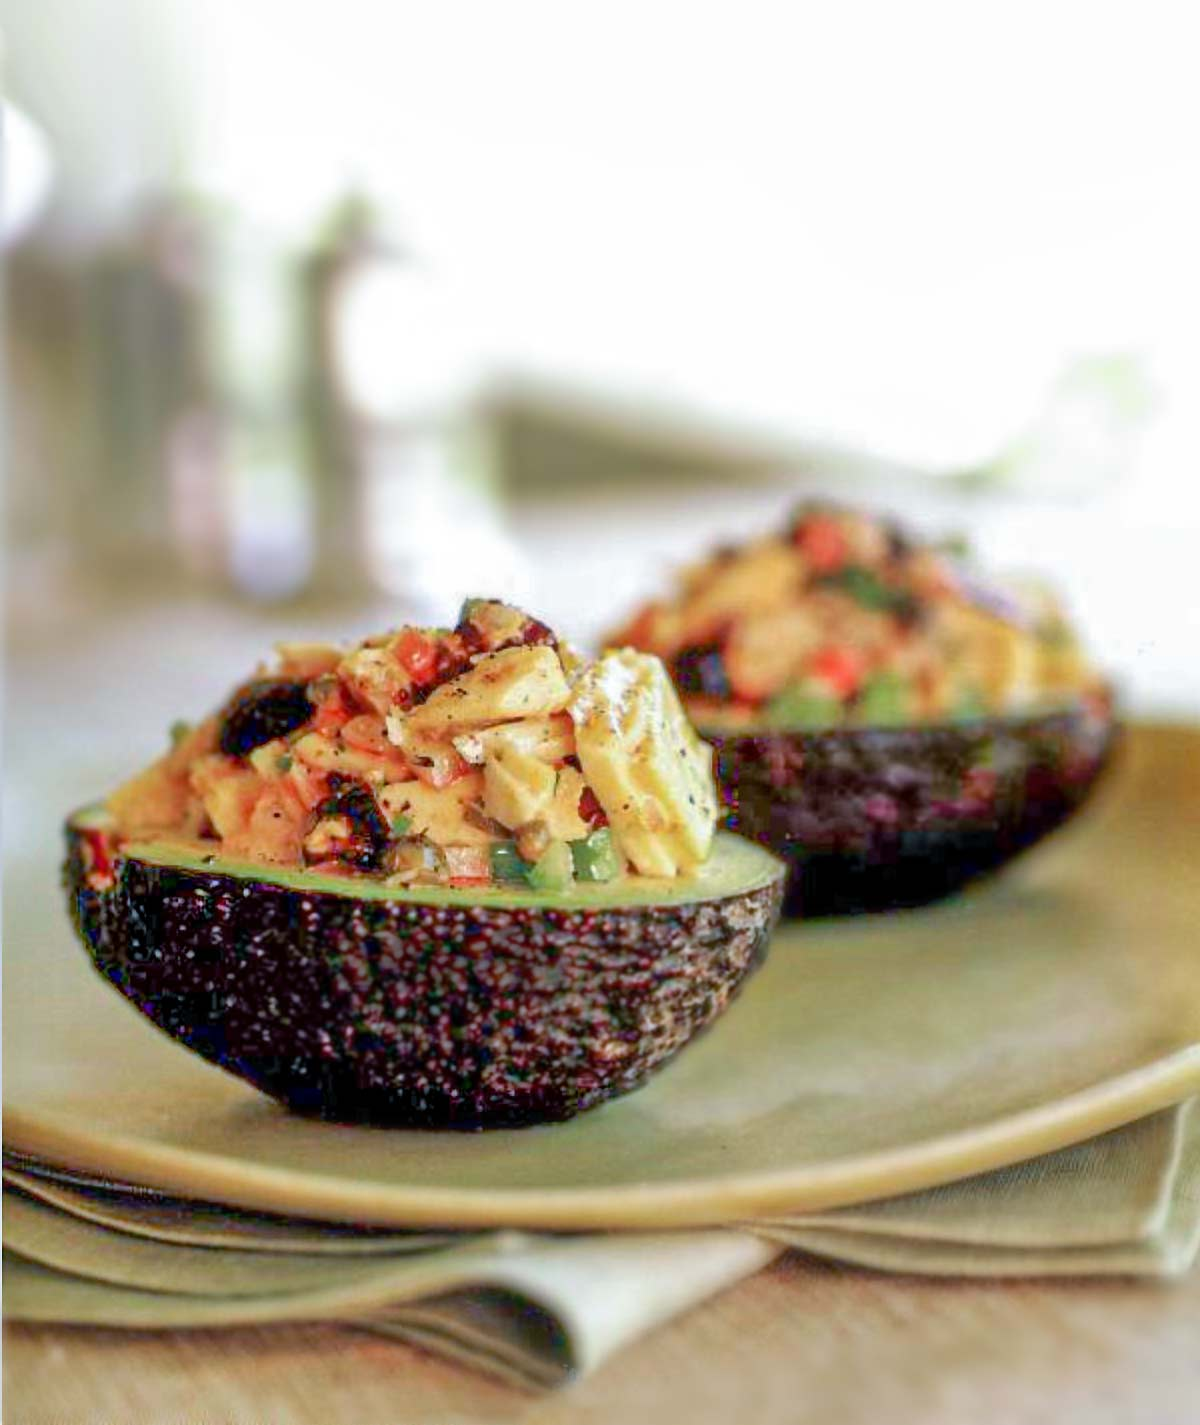 Two avocado halves filled with fresh tuna with dry-cured black olives.